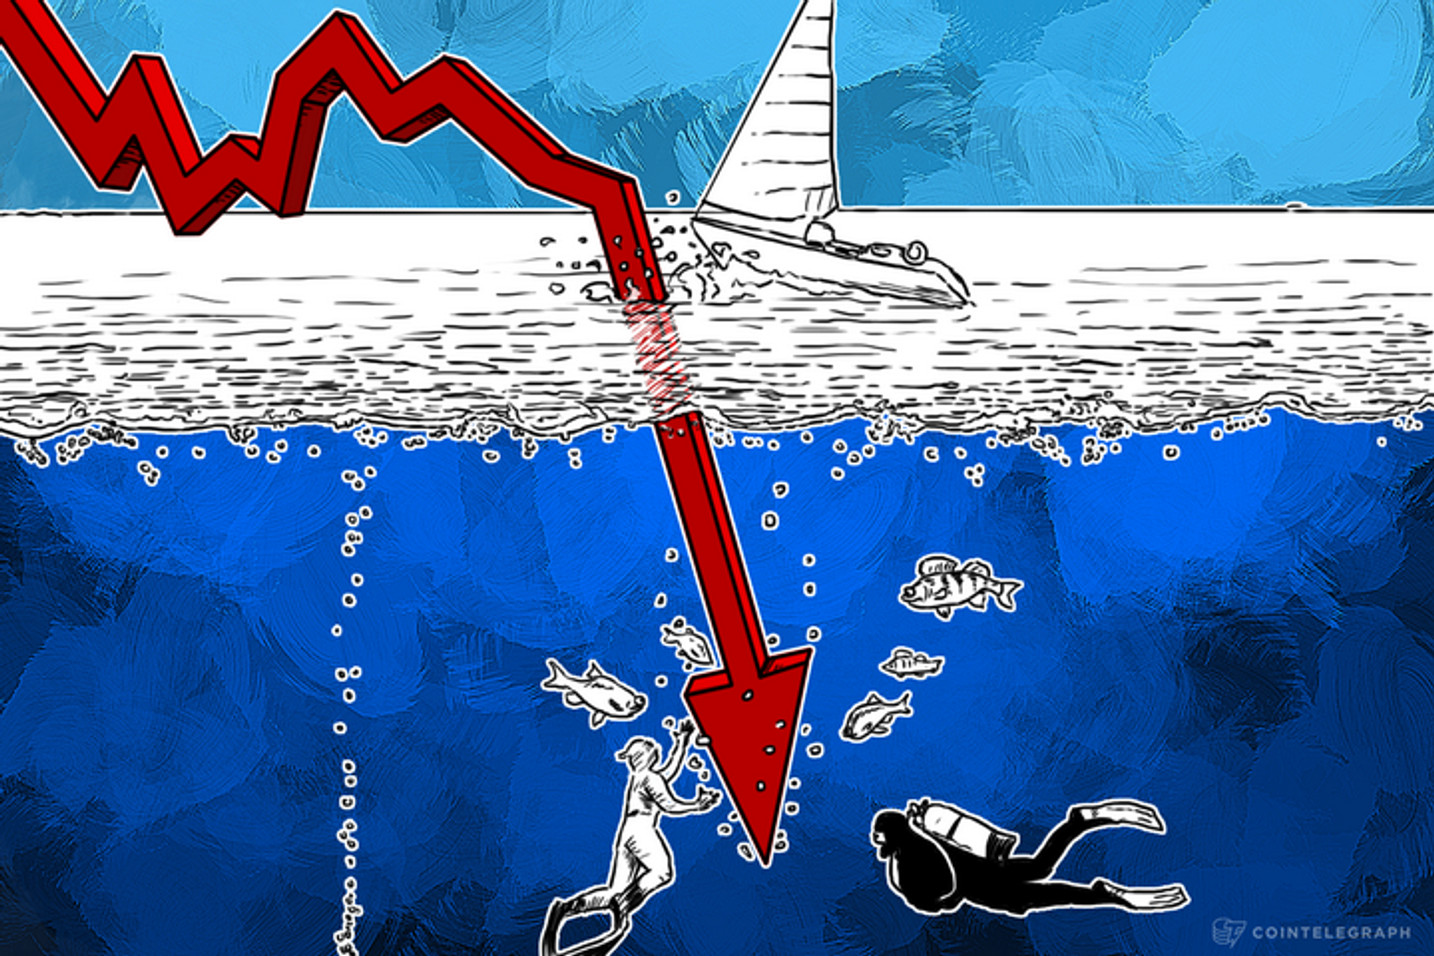 When Will the Price of Bitcoin Bottom Out?